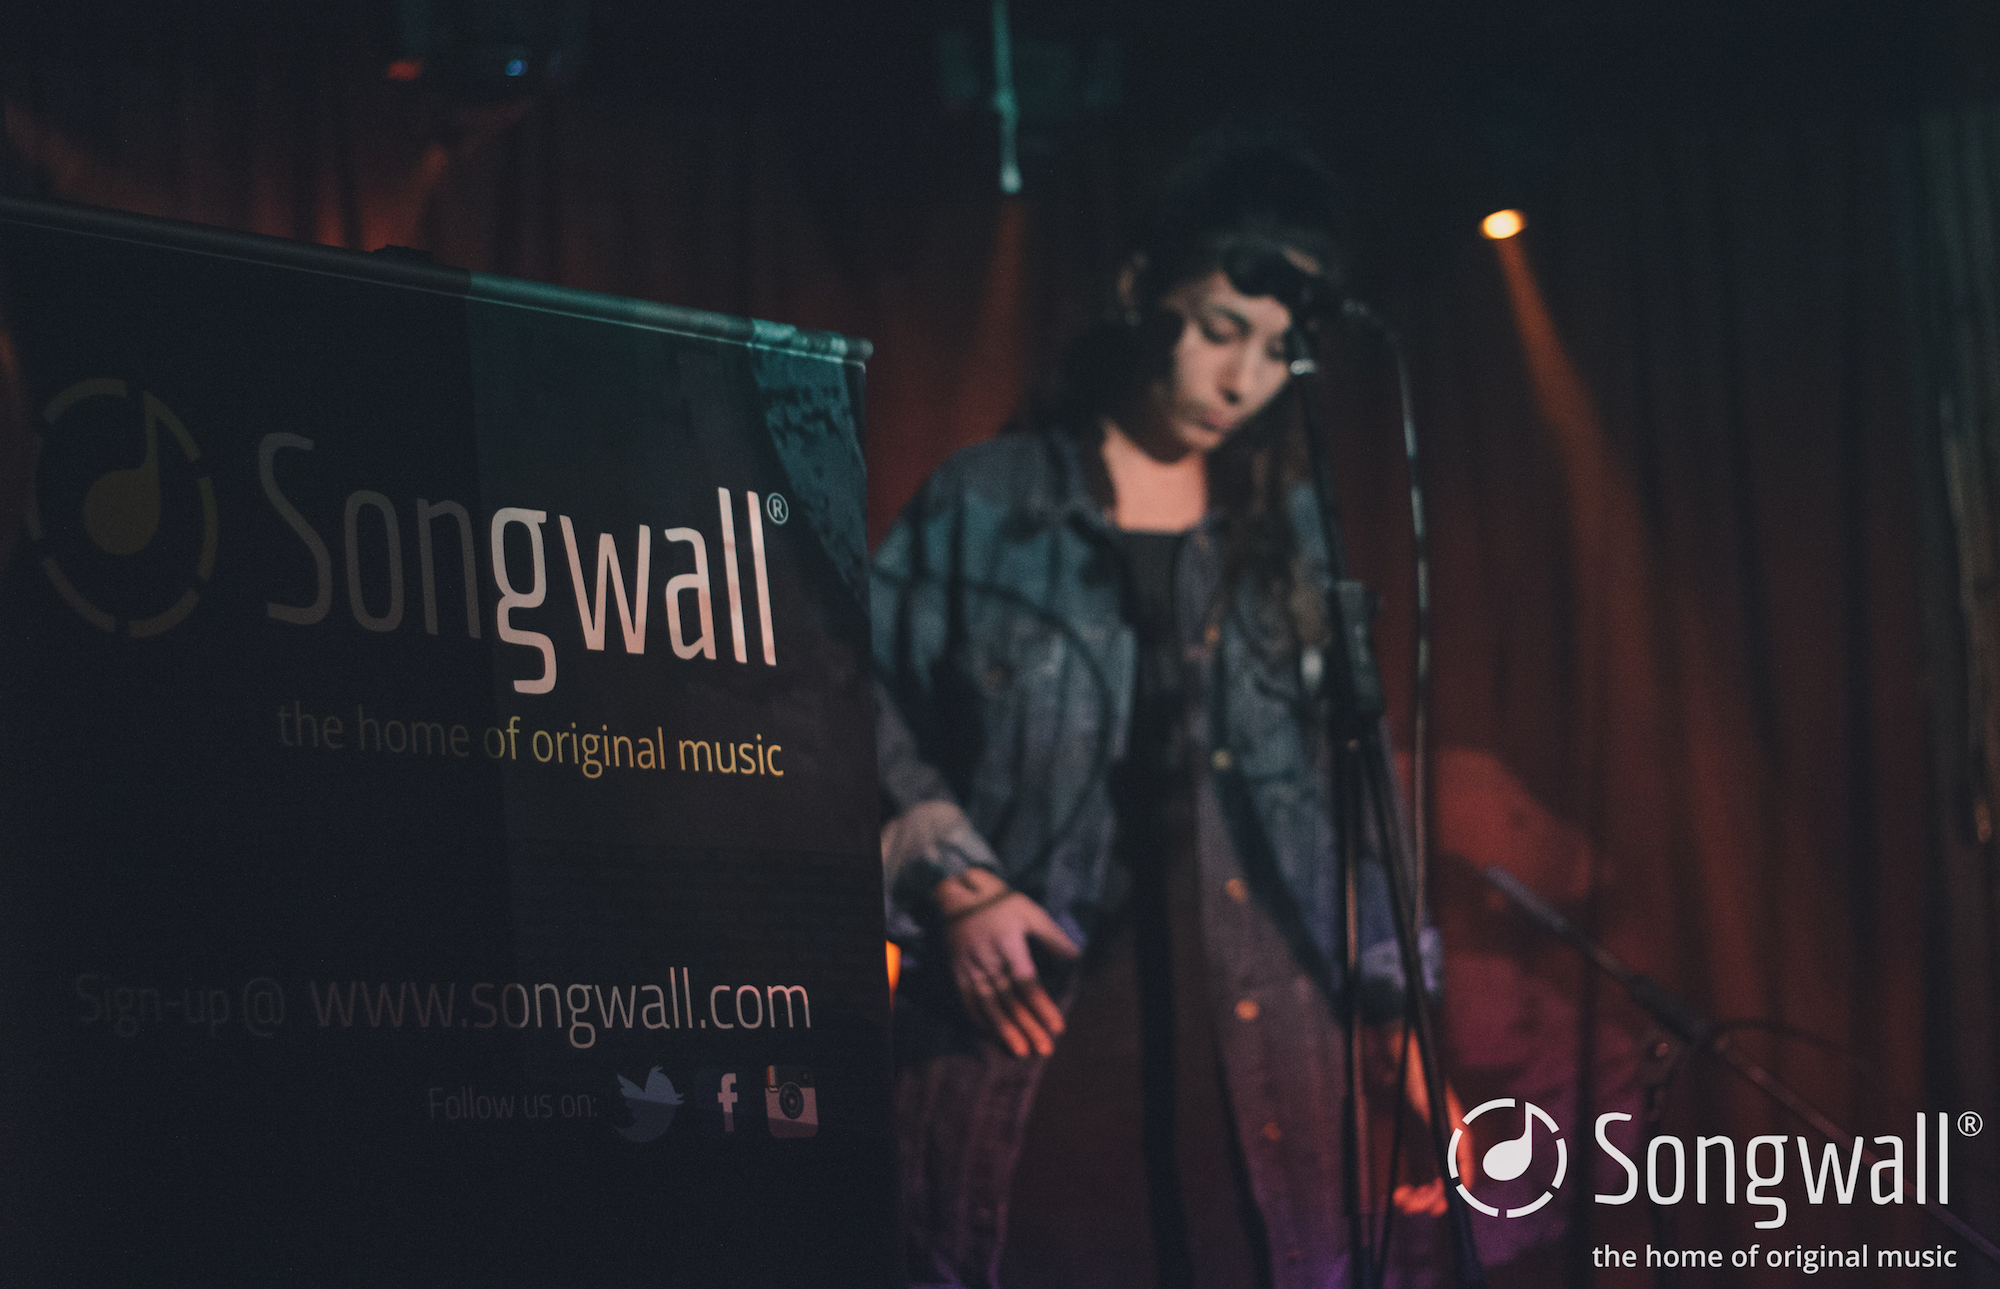 Ella_Joy_Songwall_Cogs_Bar_lores